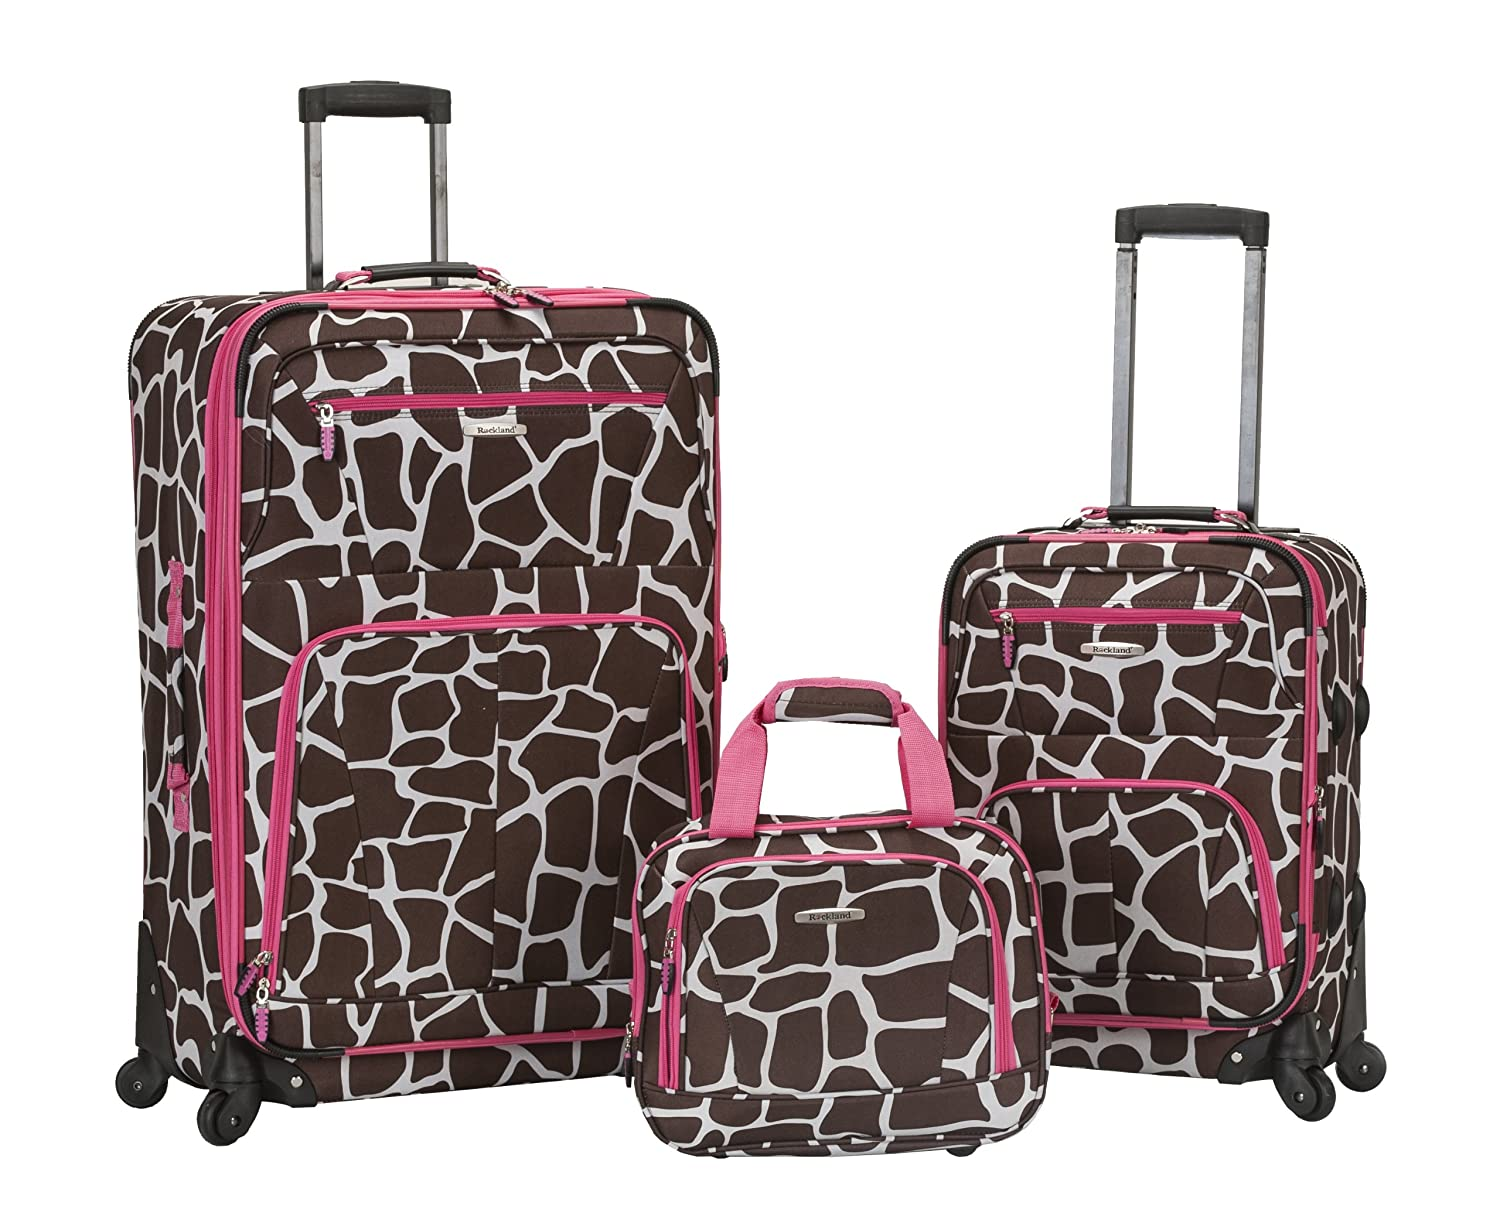 Rockland Expandable Spinner 14 Tote, Pink Zebra, 19-Inch/28-Inch Fox Luggage F228-PINKZEBRA